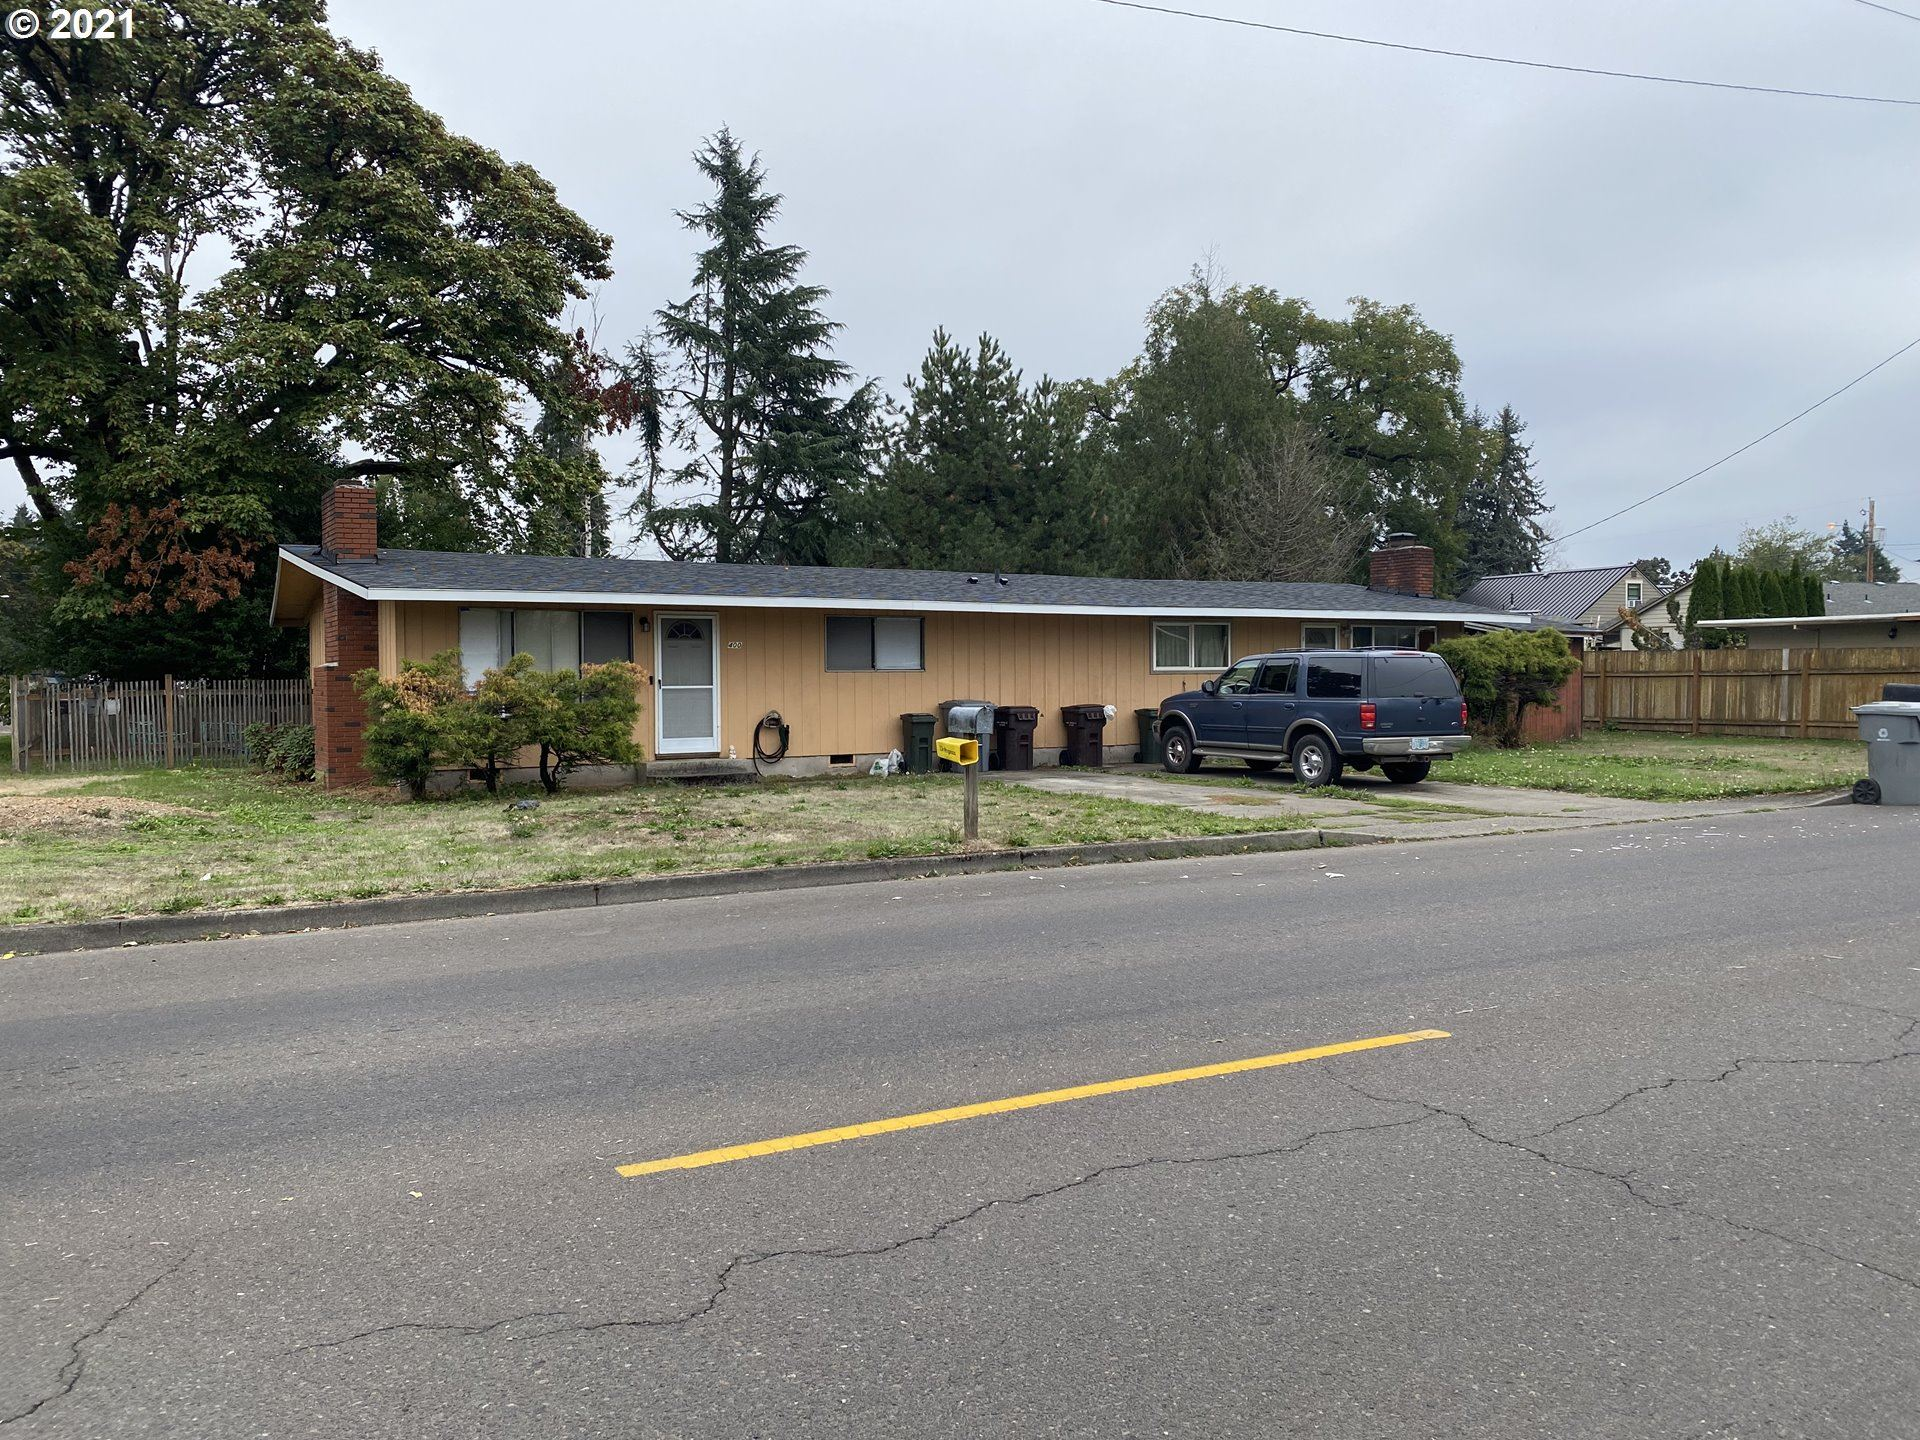 Photo of 400 S ELM ST #2, Canby, OR 97013 (MLS # 21247341)